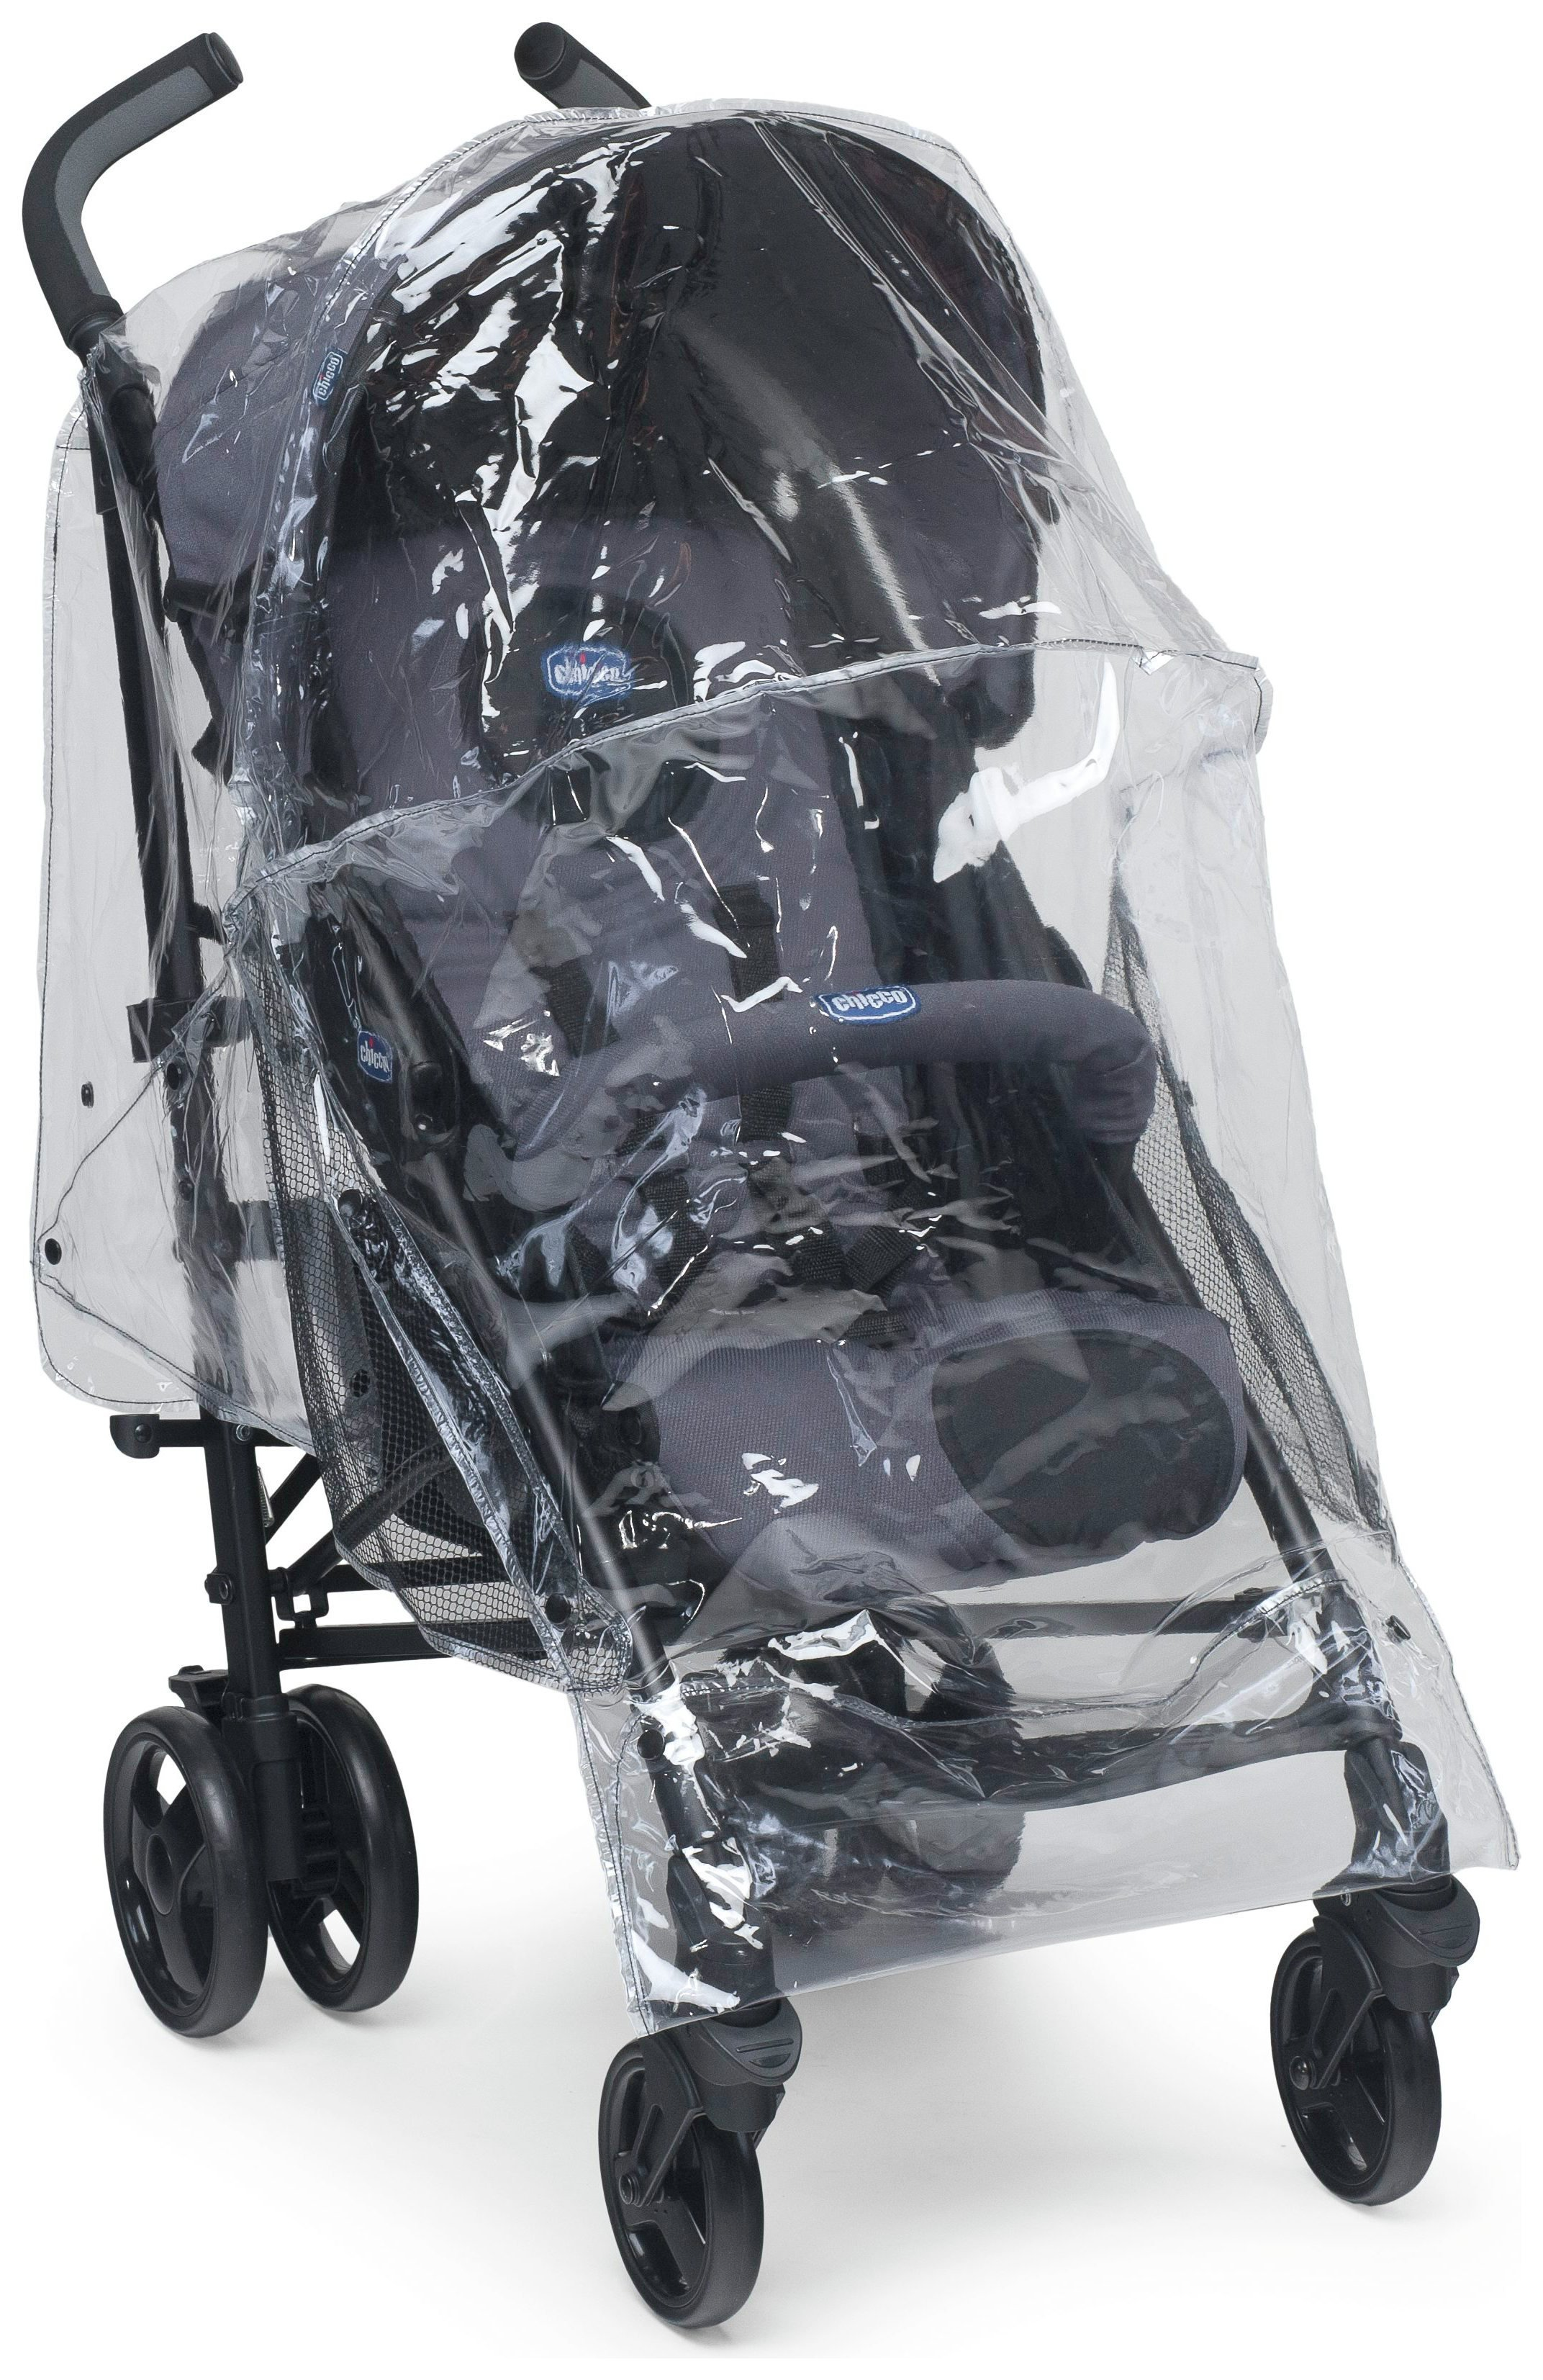 Chicco Deluxe Stroller Raincover